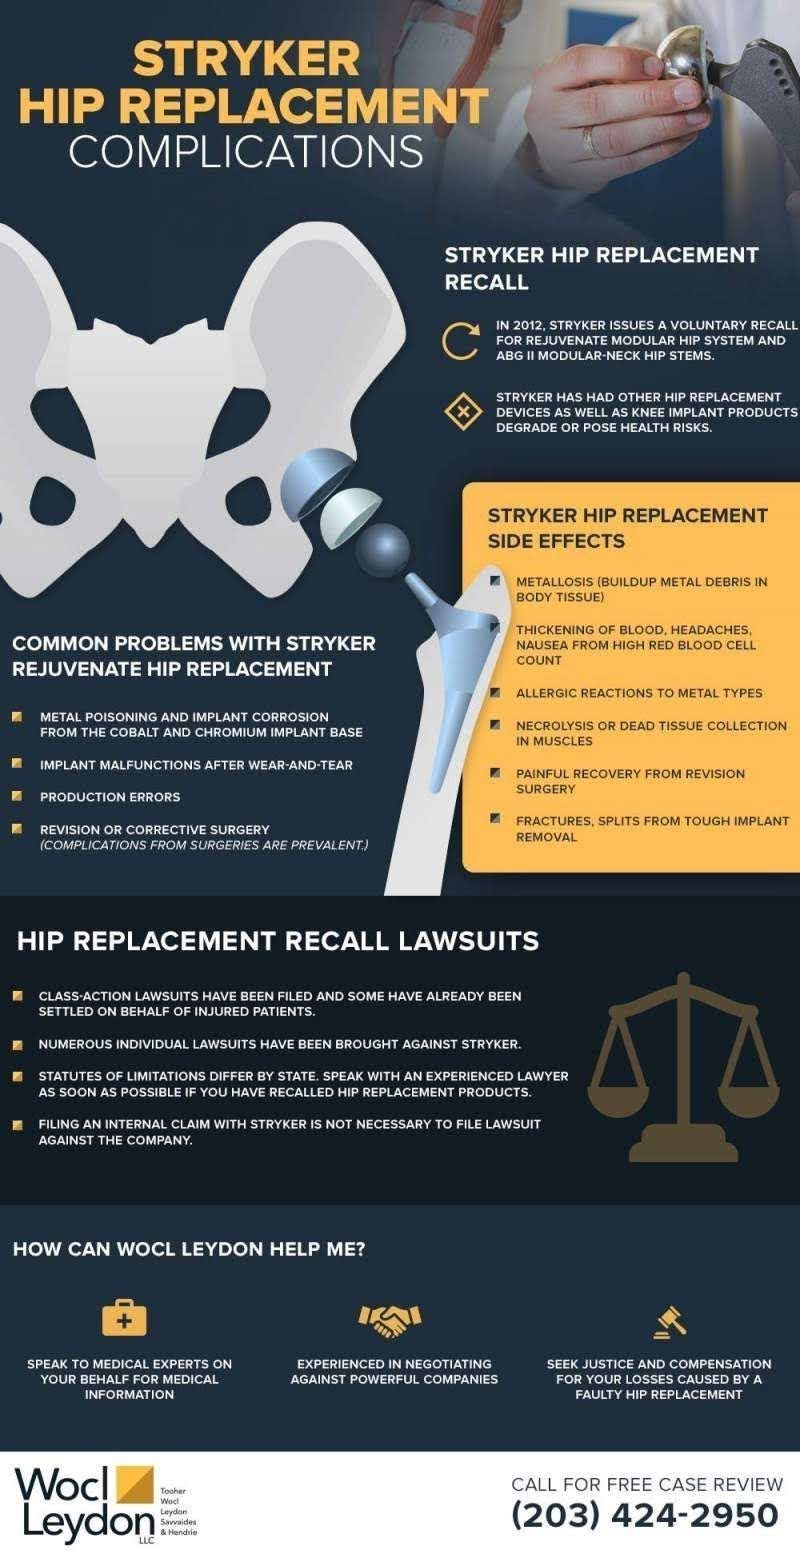 Stryker Hip Replacement Complication Infographic Law